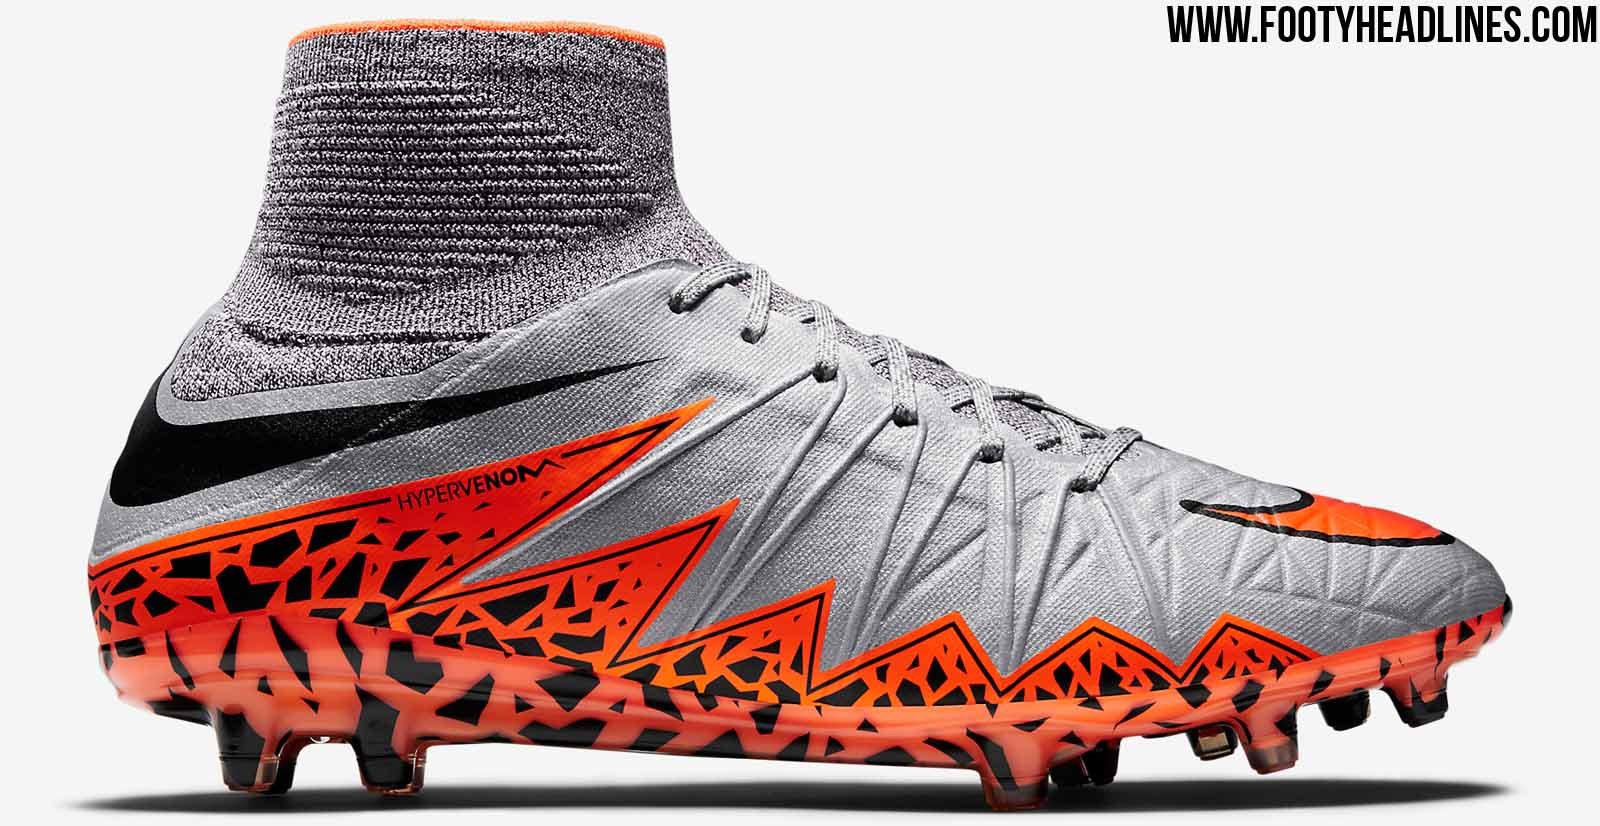 grey nike hypervenom ii 2015 boots released footy headlines. Black Bedroom Furniture Sets. Home Design Ideas